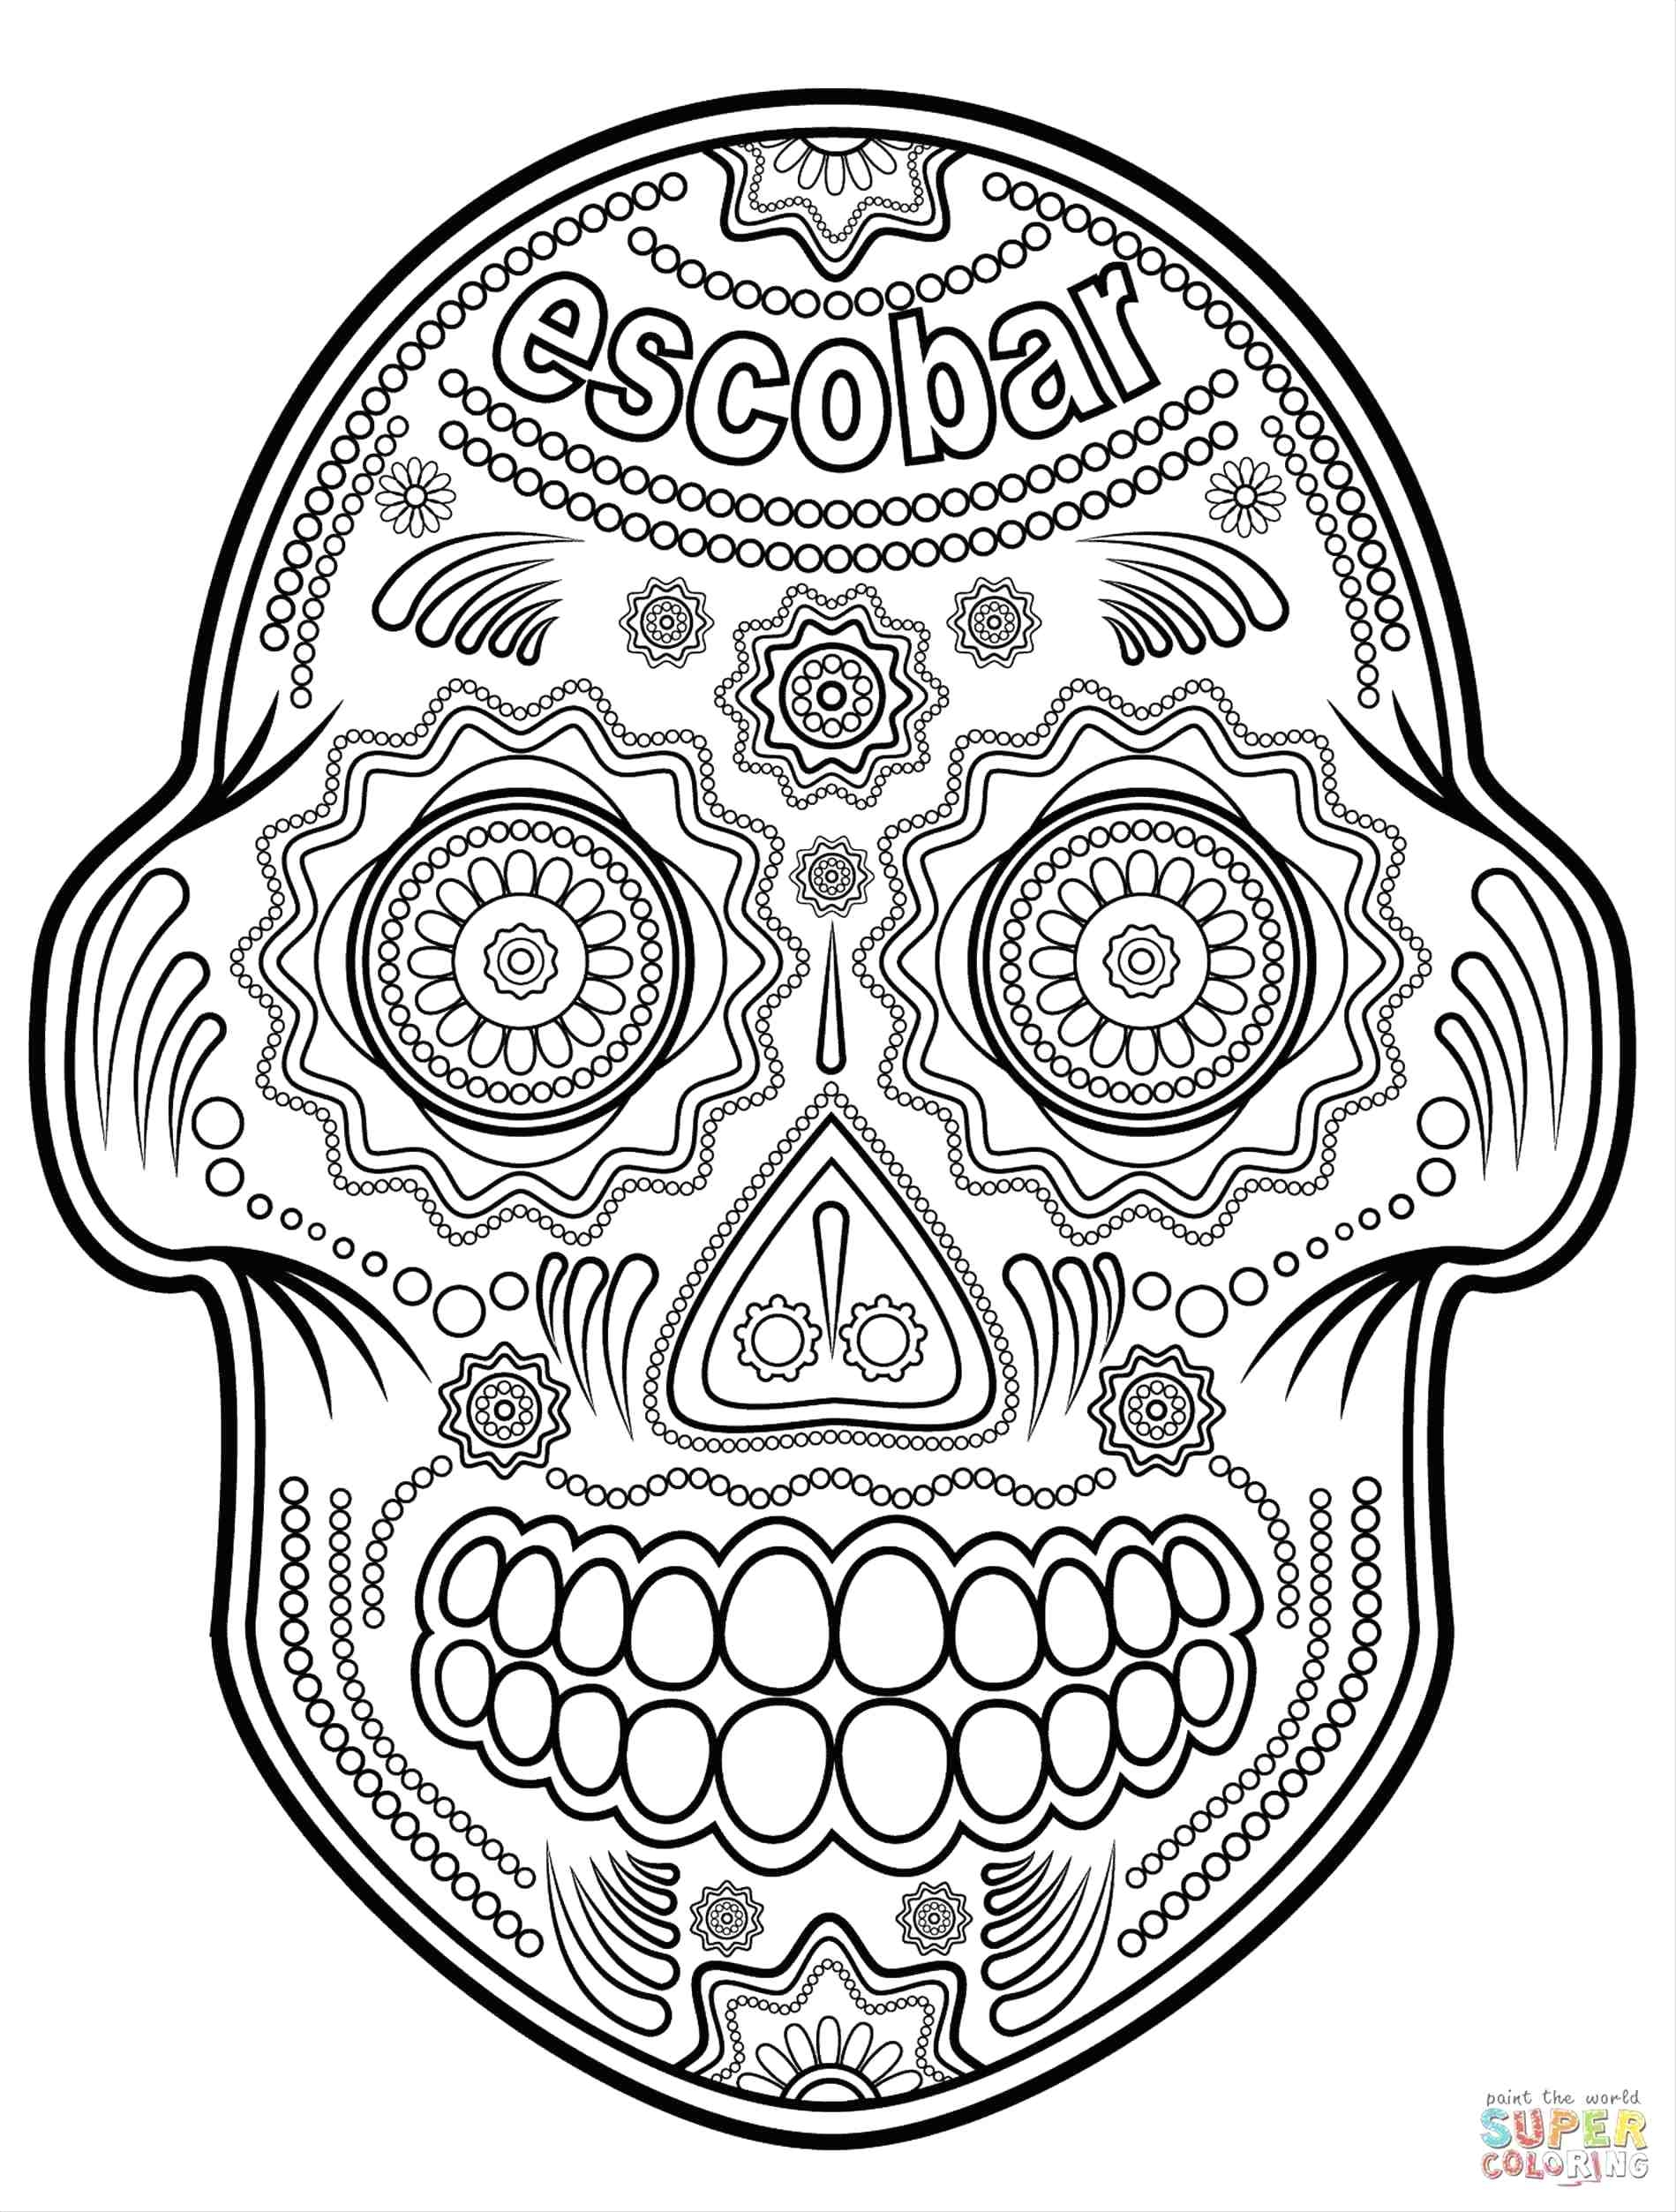 day of the dead skull coloring page day of the dead coloring pages el dia de los muertos 4 el page coloring skull dead the day of